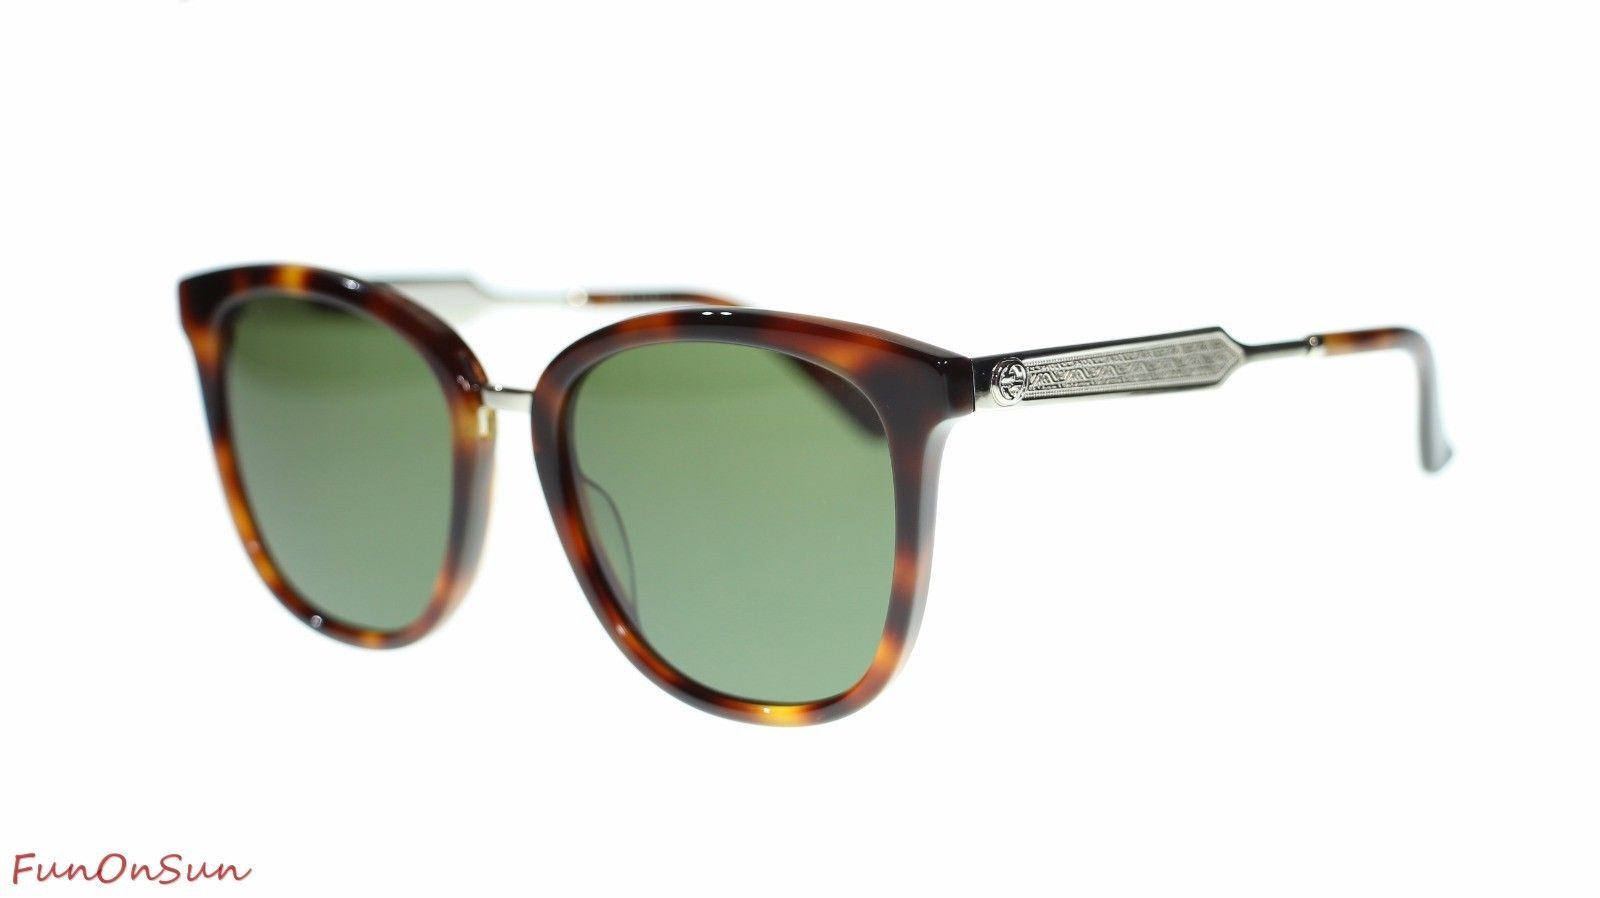 59605541e28e S l1600. S l1600. Previous. Gucci Square Sunglasses GG0073S 003 Havana  Silver/Green Lens 55mm Authentic